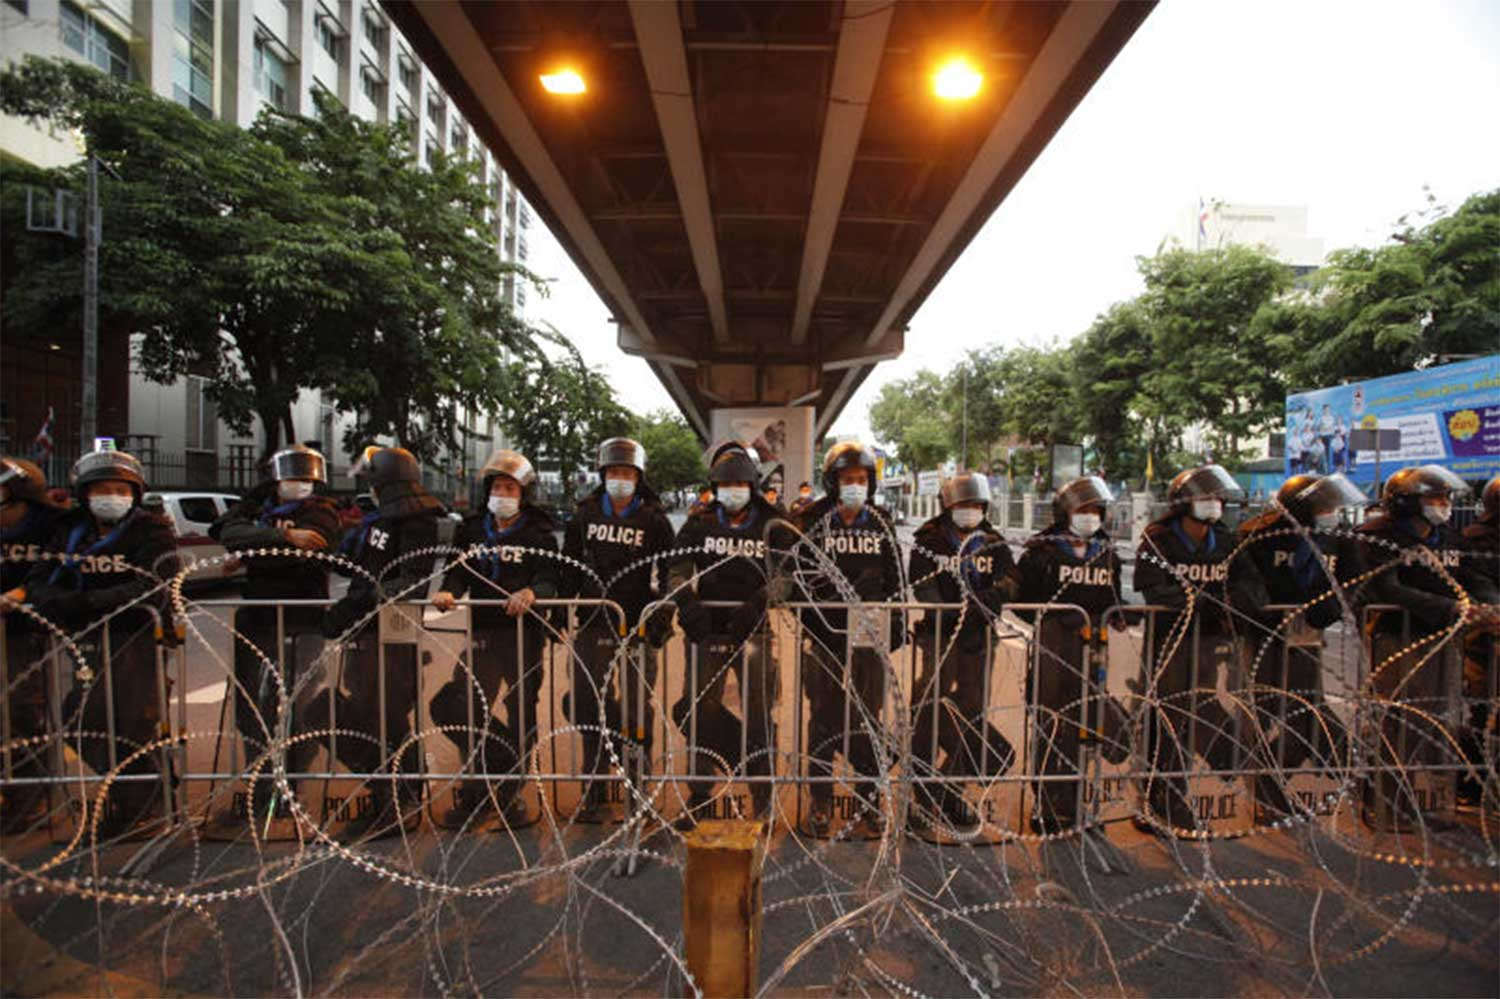 Thailand lifts emergency measures aimed at stopping protests